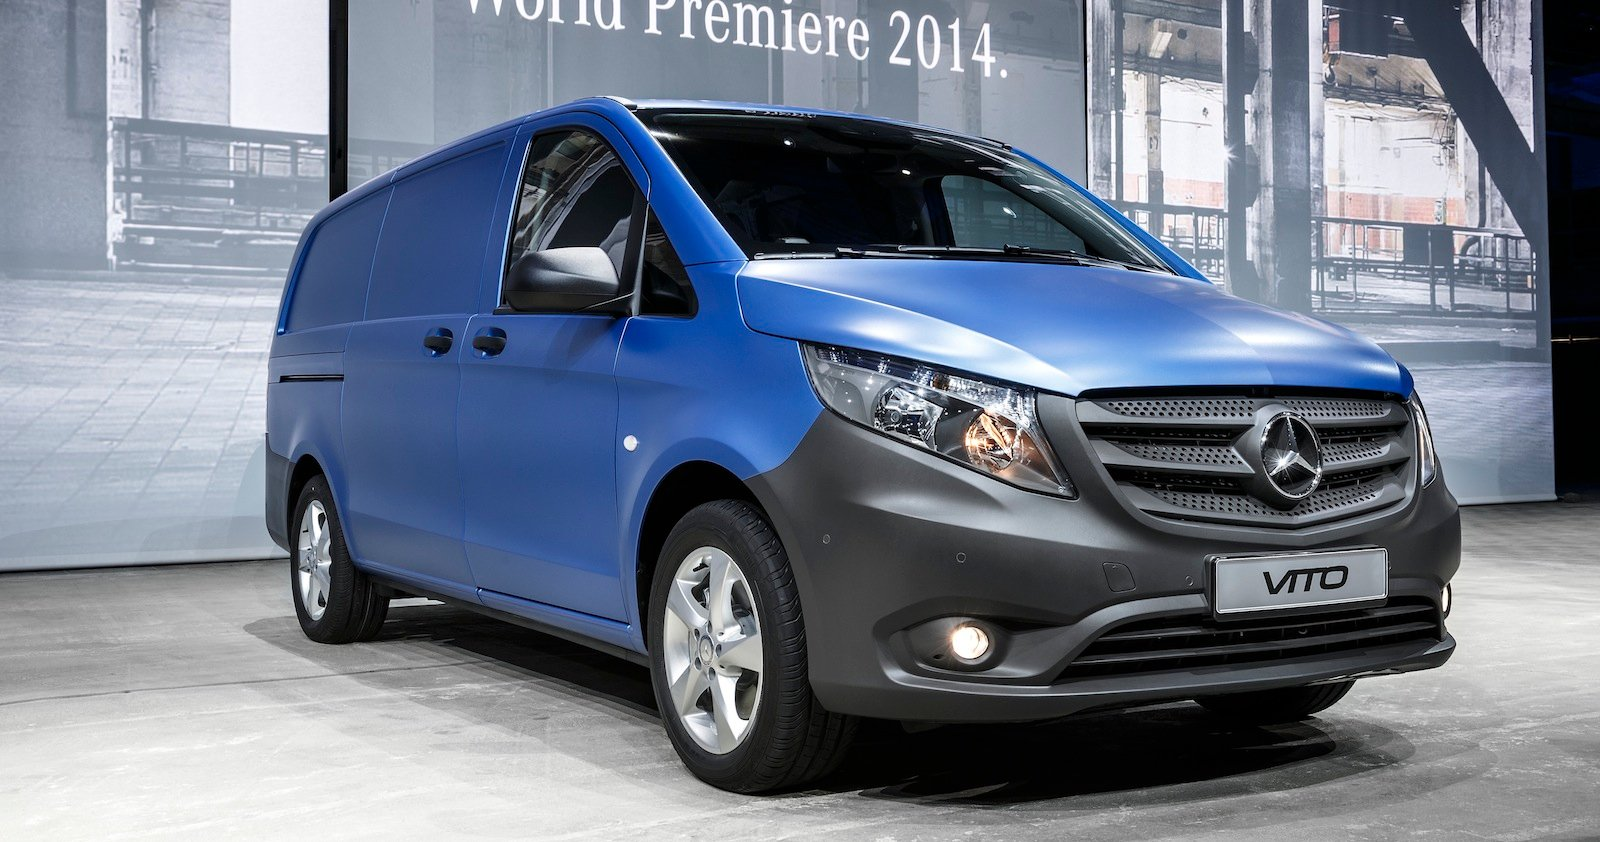 2015 mercedes benz vito revealed photos 1 of 12 for Mercedes benz new cars 2015